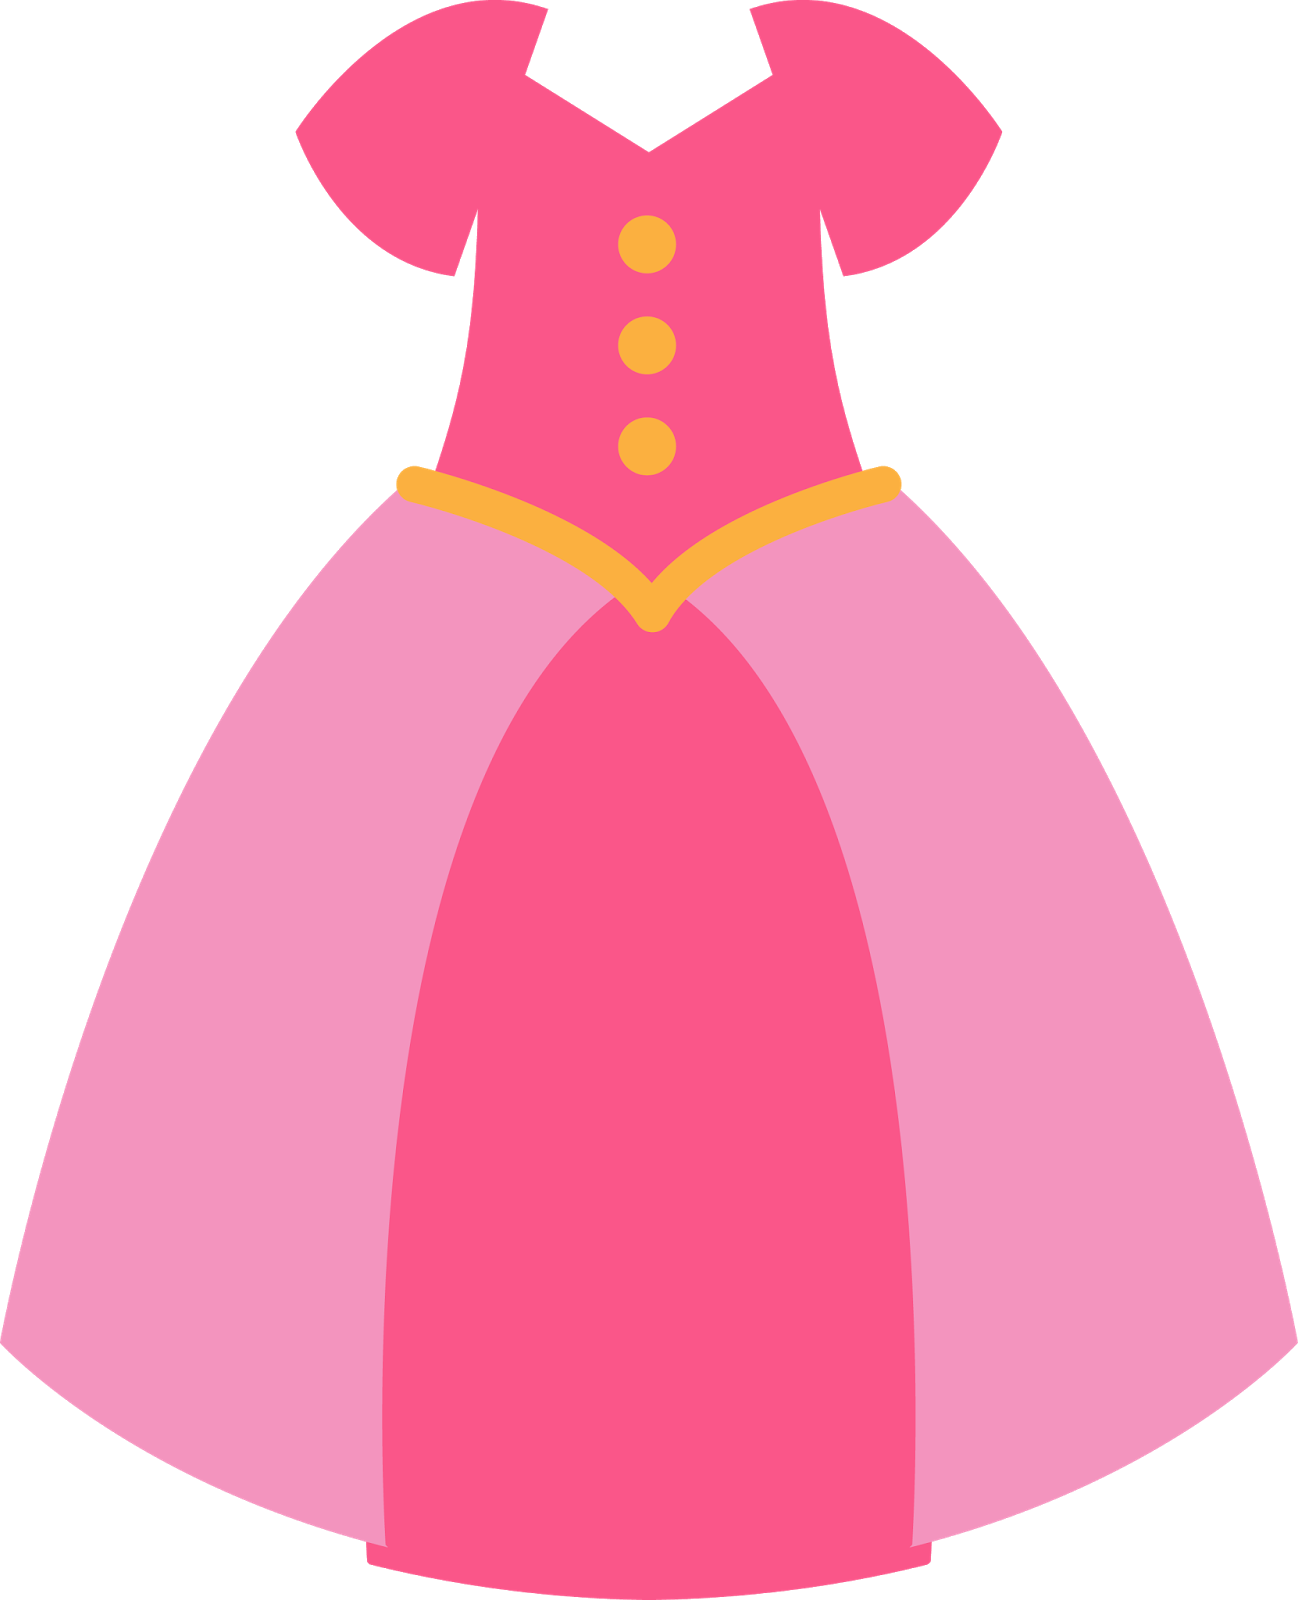 costume clipart clothing